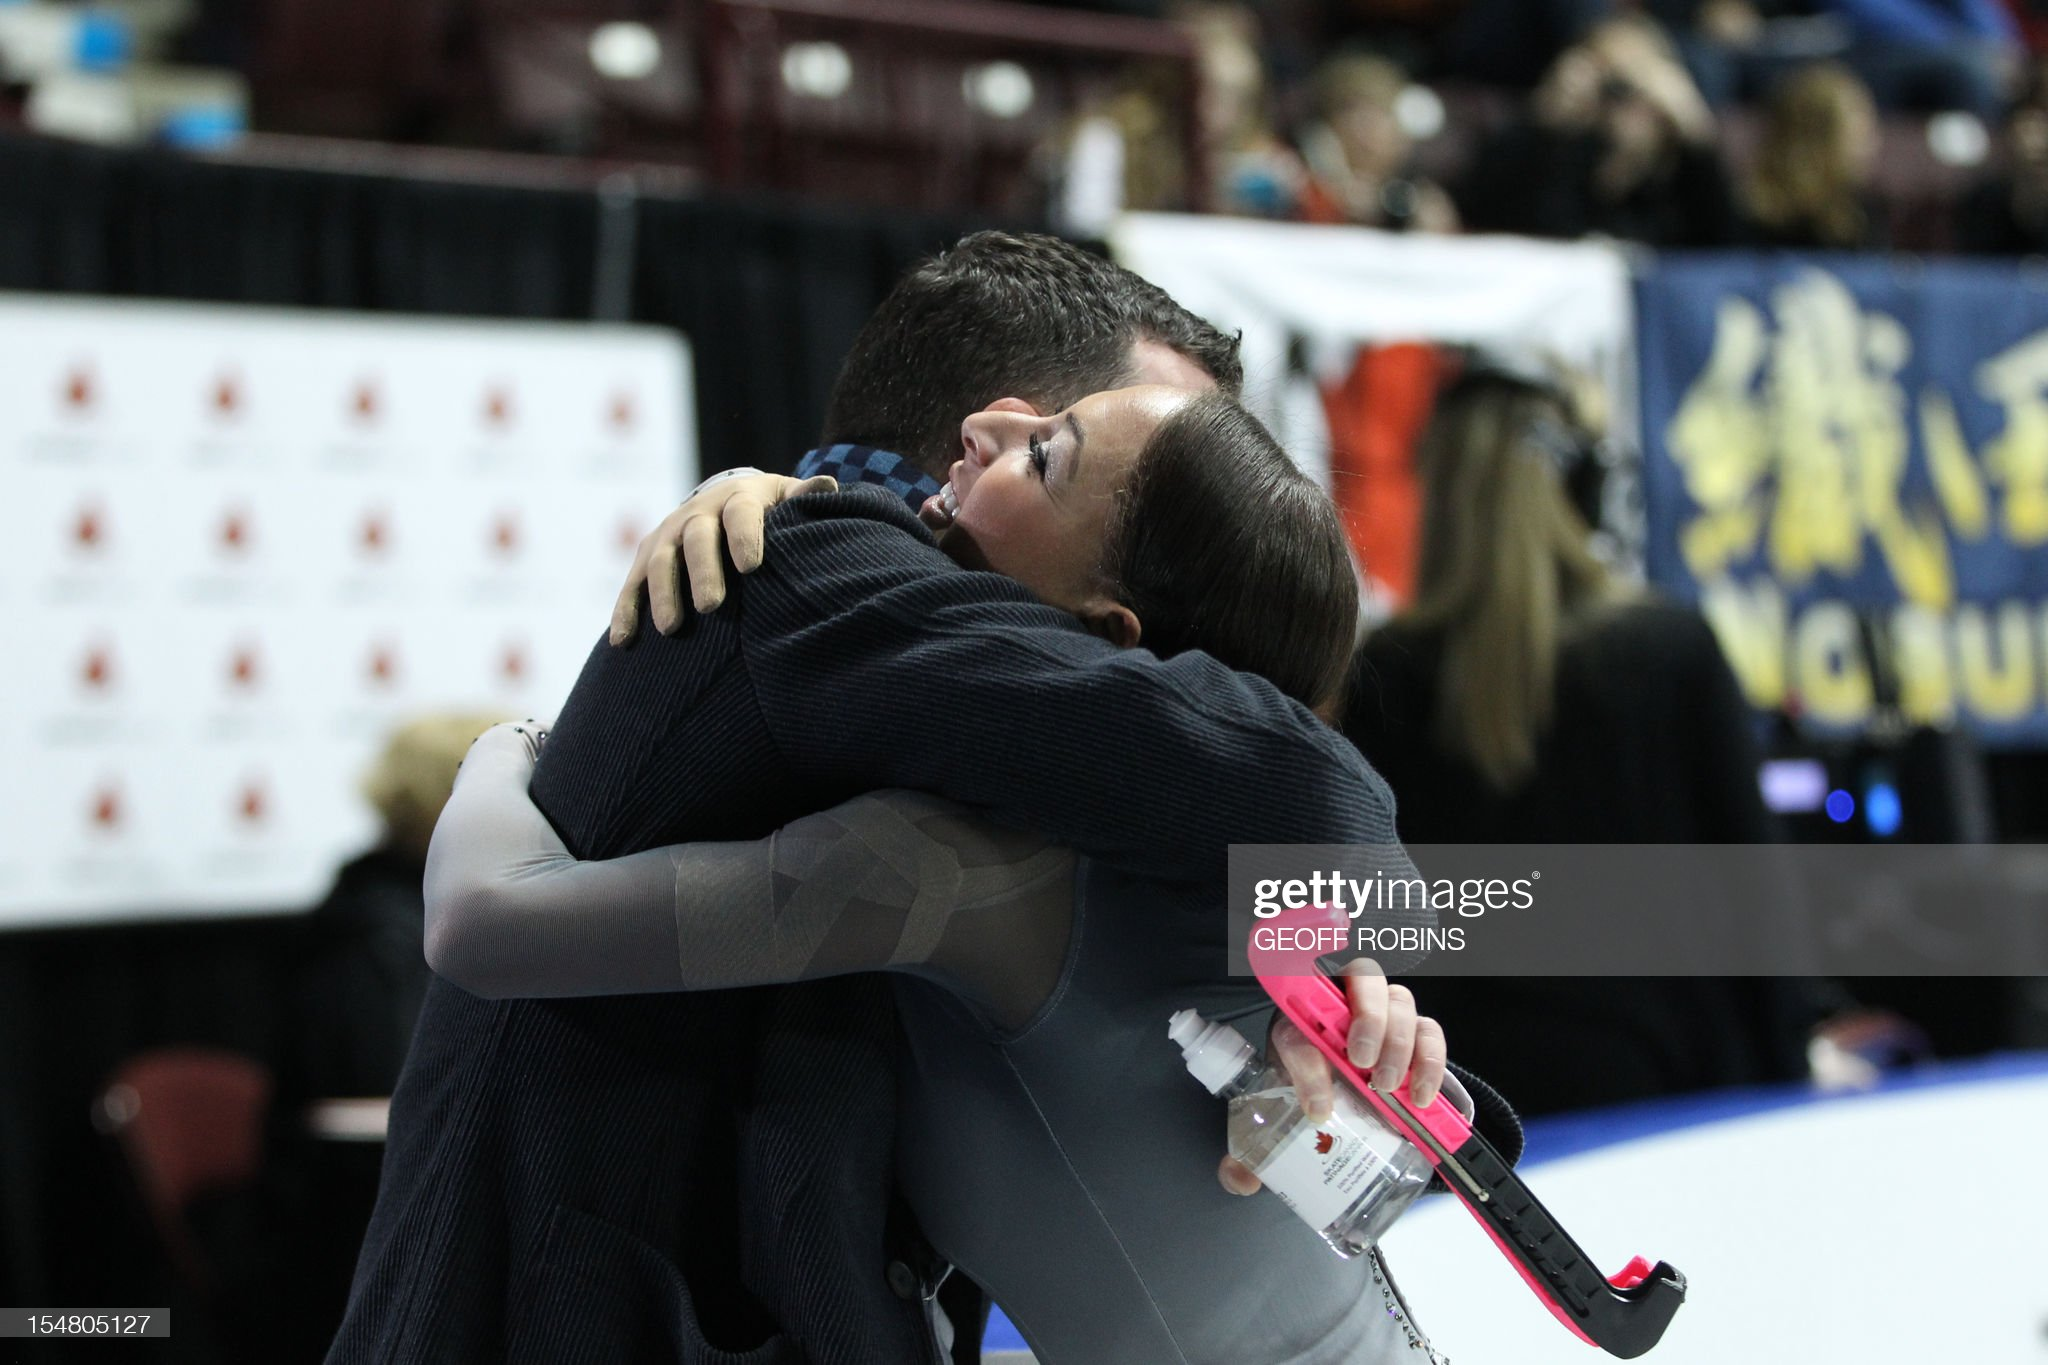 Брайан О́рсер / Brian Orser & Toronto Cricket Skating Curling Club - Страница 16 Elene-gedevanishvili-of-georgia-hugs-her-coach-brian-orser-following-picture-id154805127?s=2048x2048